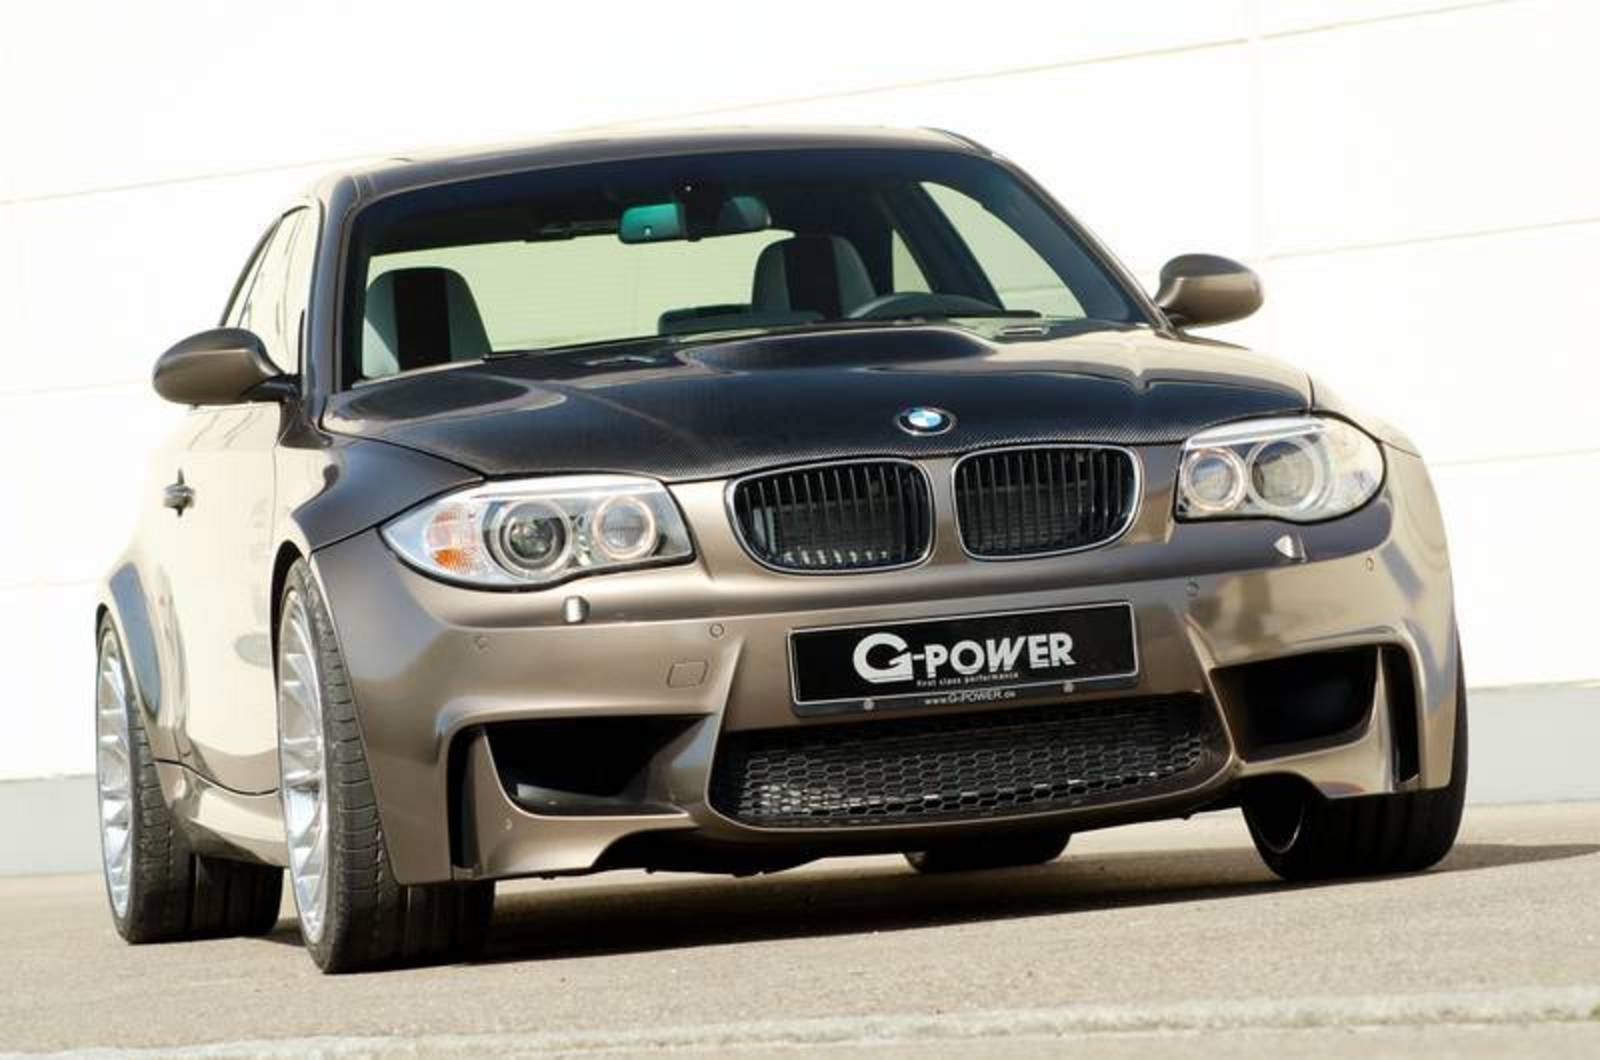 Bmw 1 Series Reviews Specs Prices Photos And Videos Top Speed X7 Pocket Bike Wire Diagram 2013 1m G1 V8 Hurricane Rs By G Power